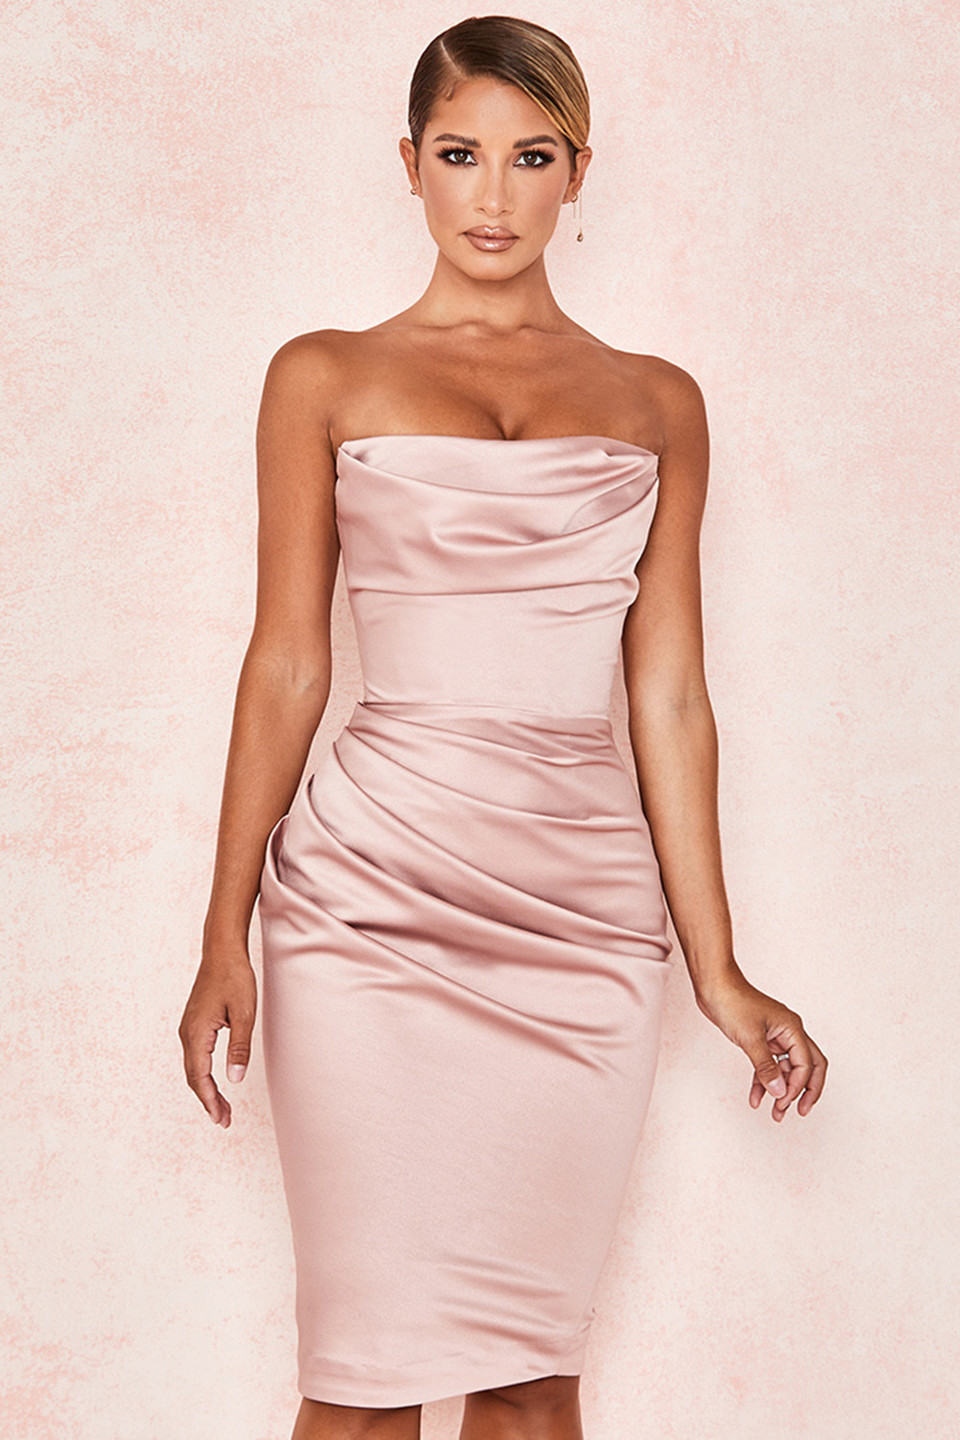 Emilia Blush Satin Strapless Corset Dress